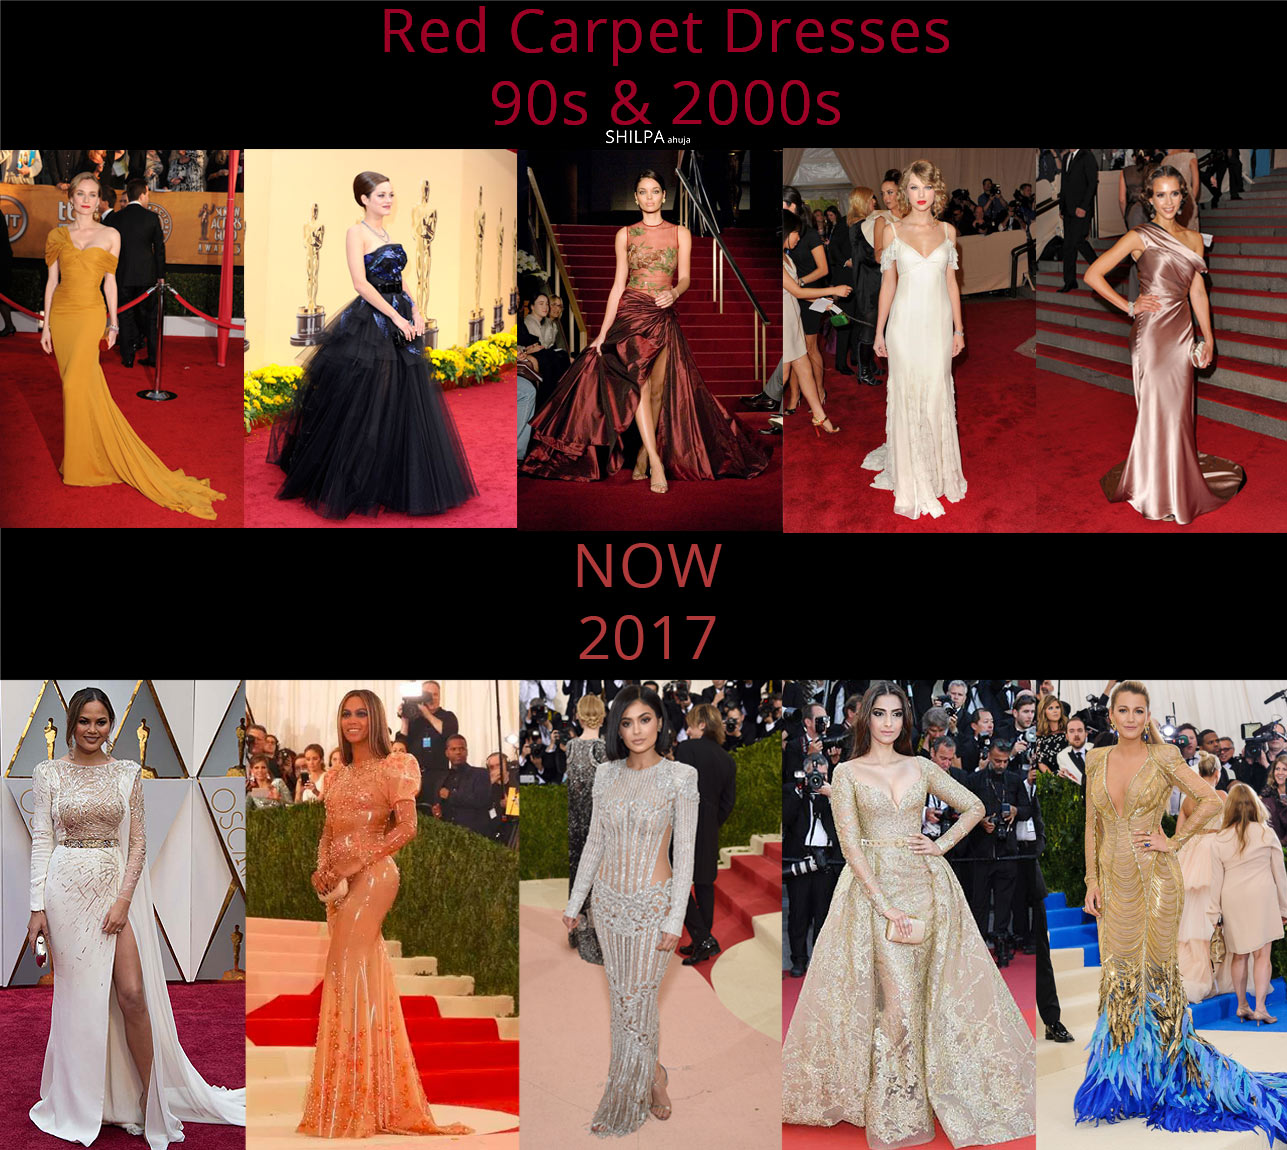 Long Sleeve Celebrity Gowns long-sleeves-celebrity-gowns-latest-red-carpet-trends-2017-full-sleeves